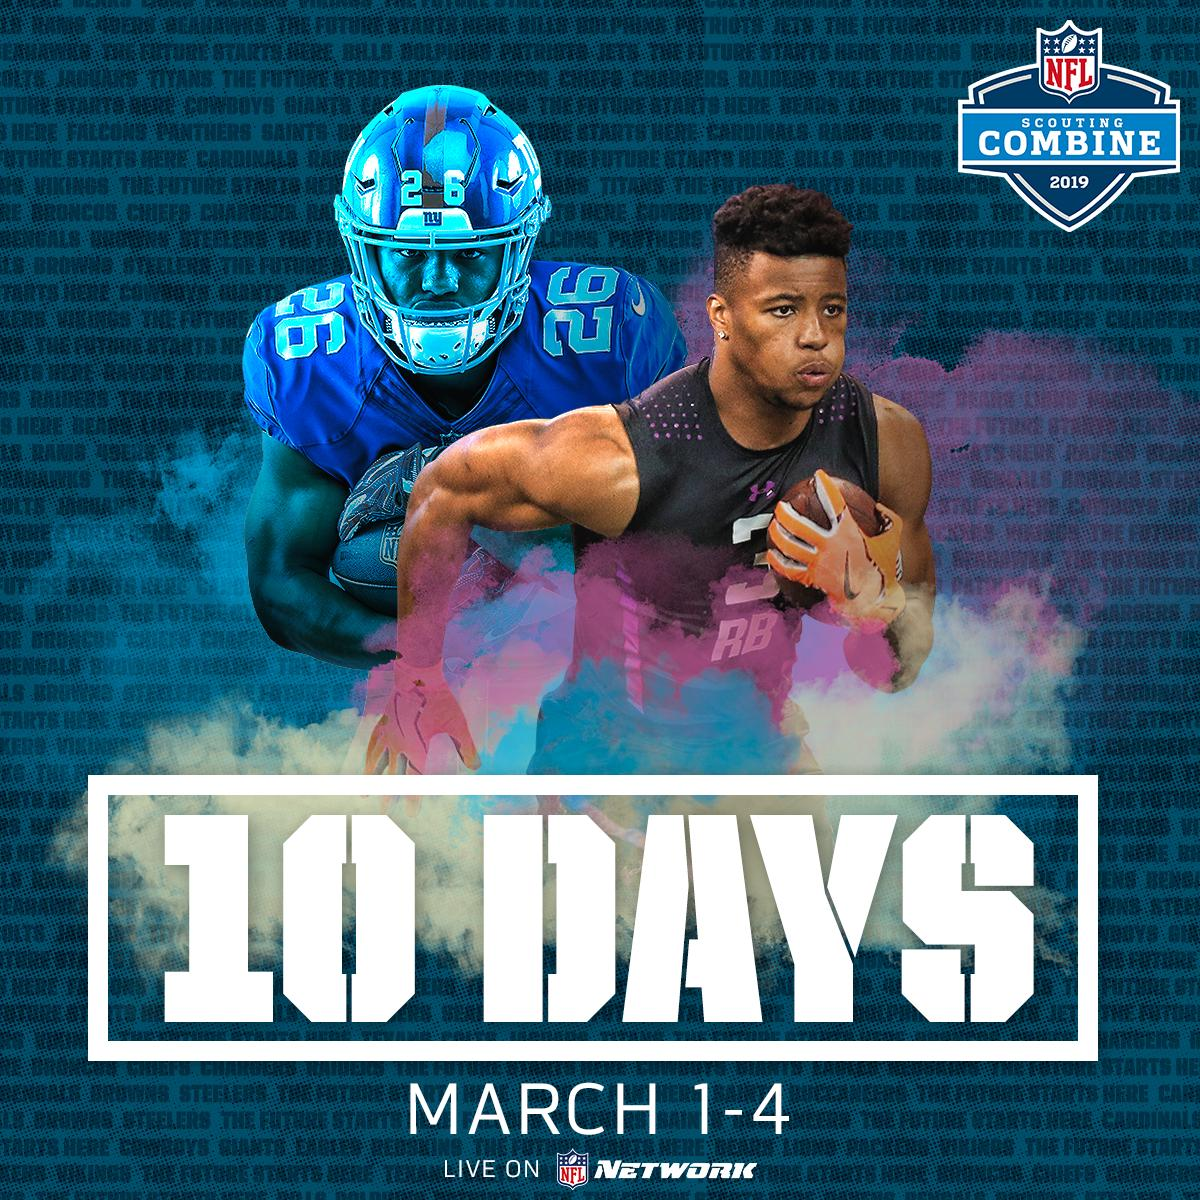 The 2019 #NFLCombine starts next week on @nflnetwork! <br>http://pic.twitter.com/Bj46ZZ1jTn